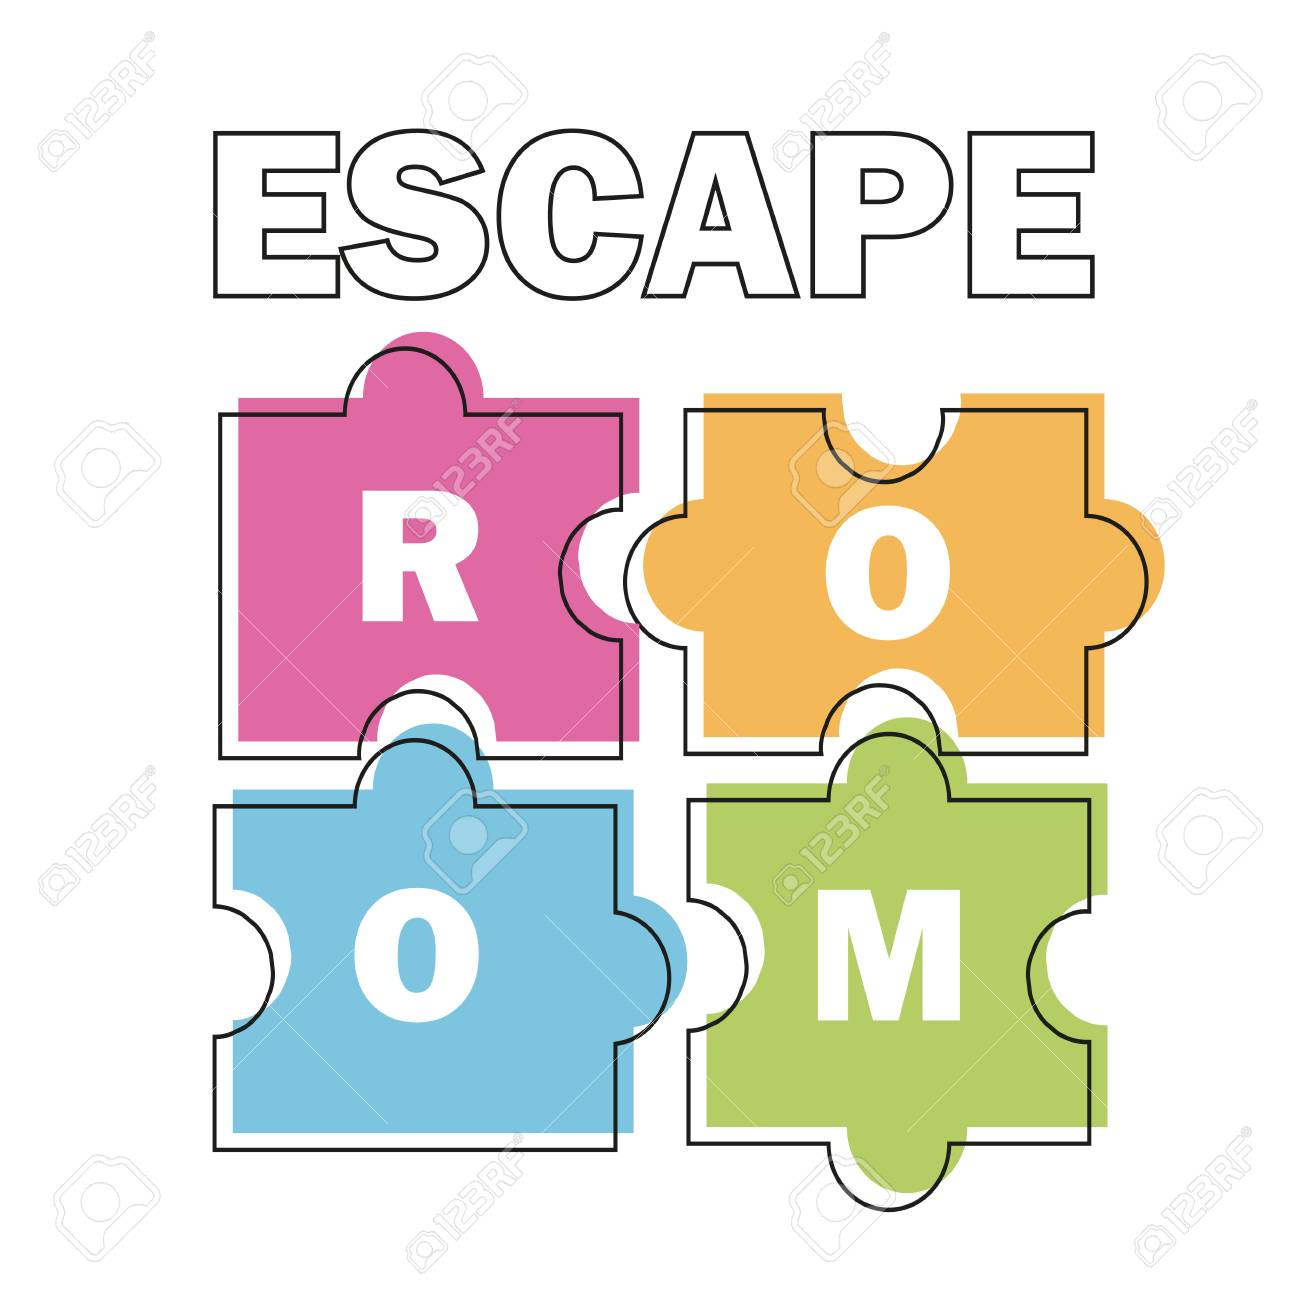 Escape room. Vector illustration poster, banner on white background puzzle - 98095734